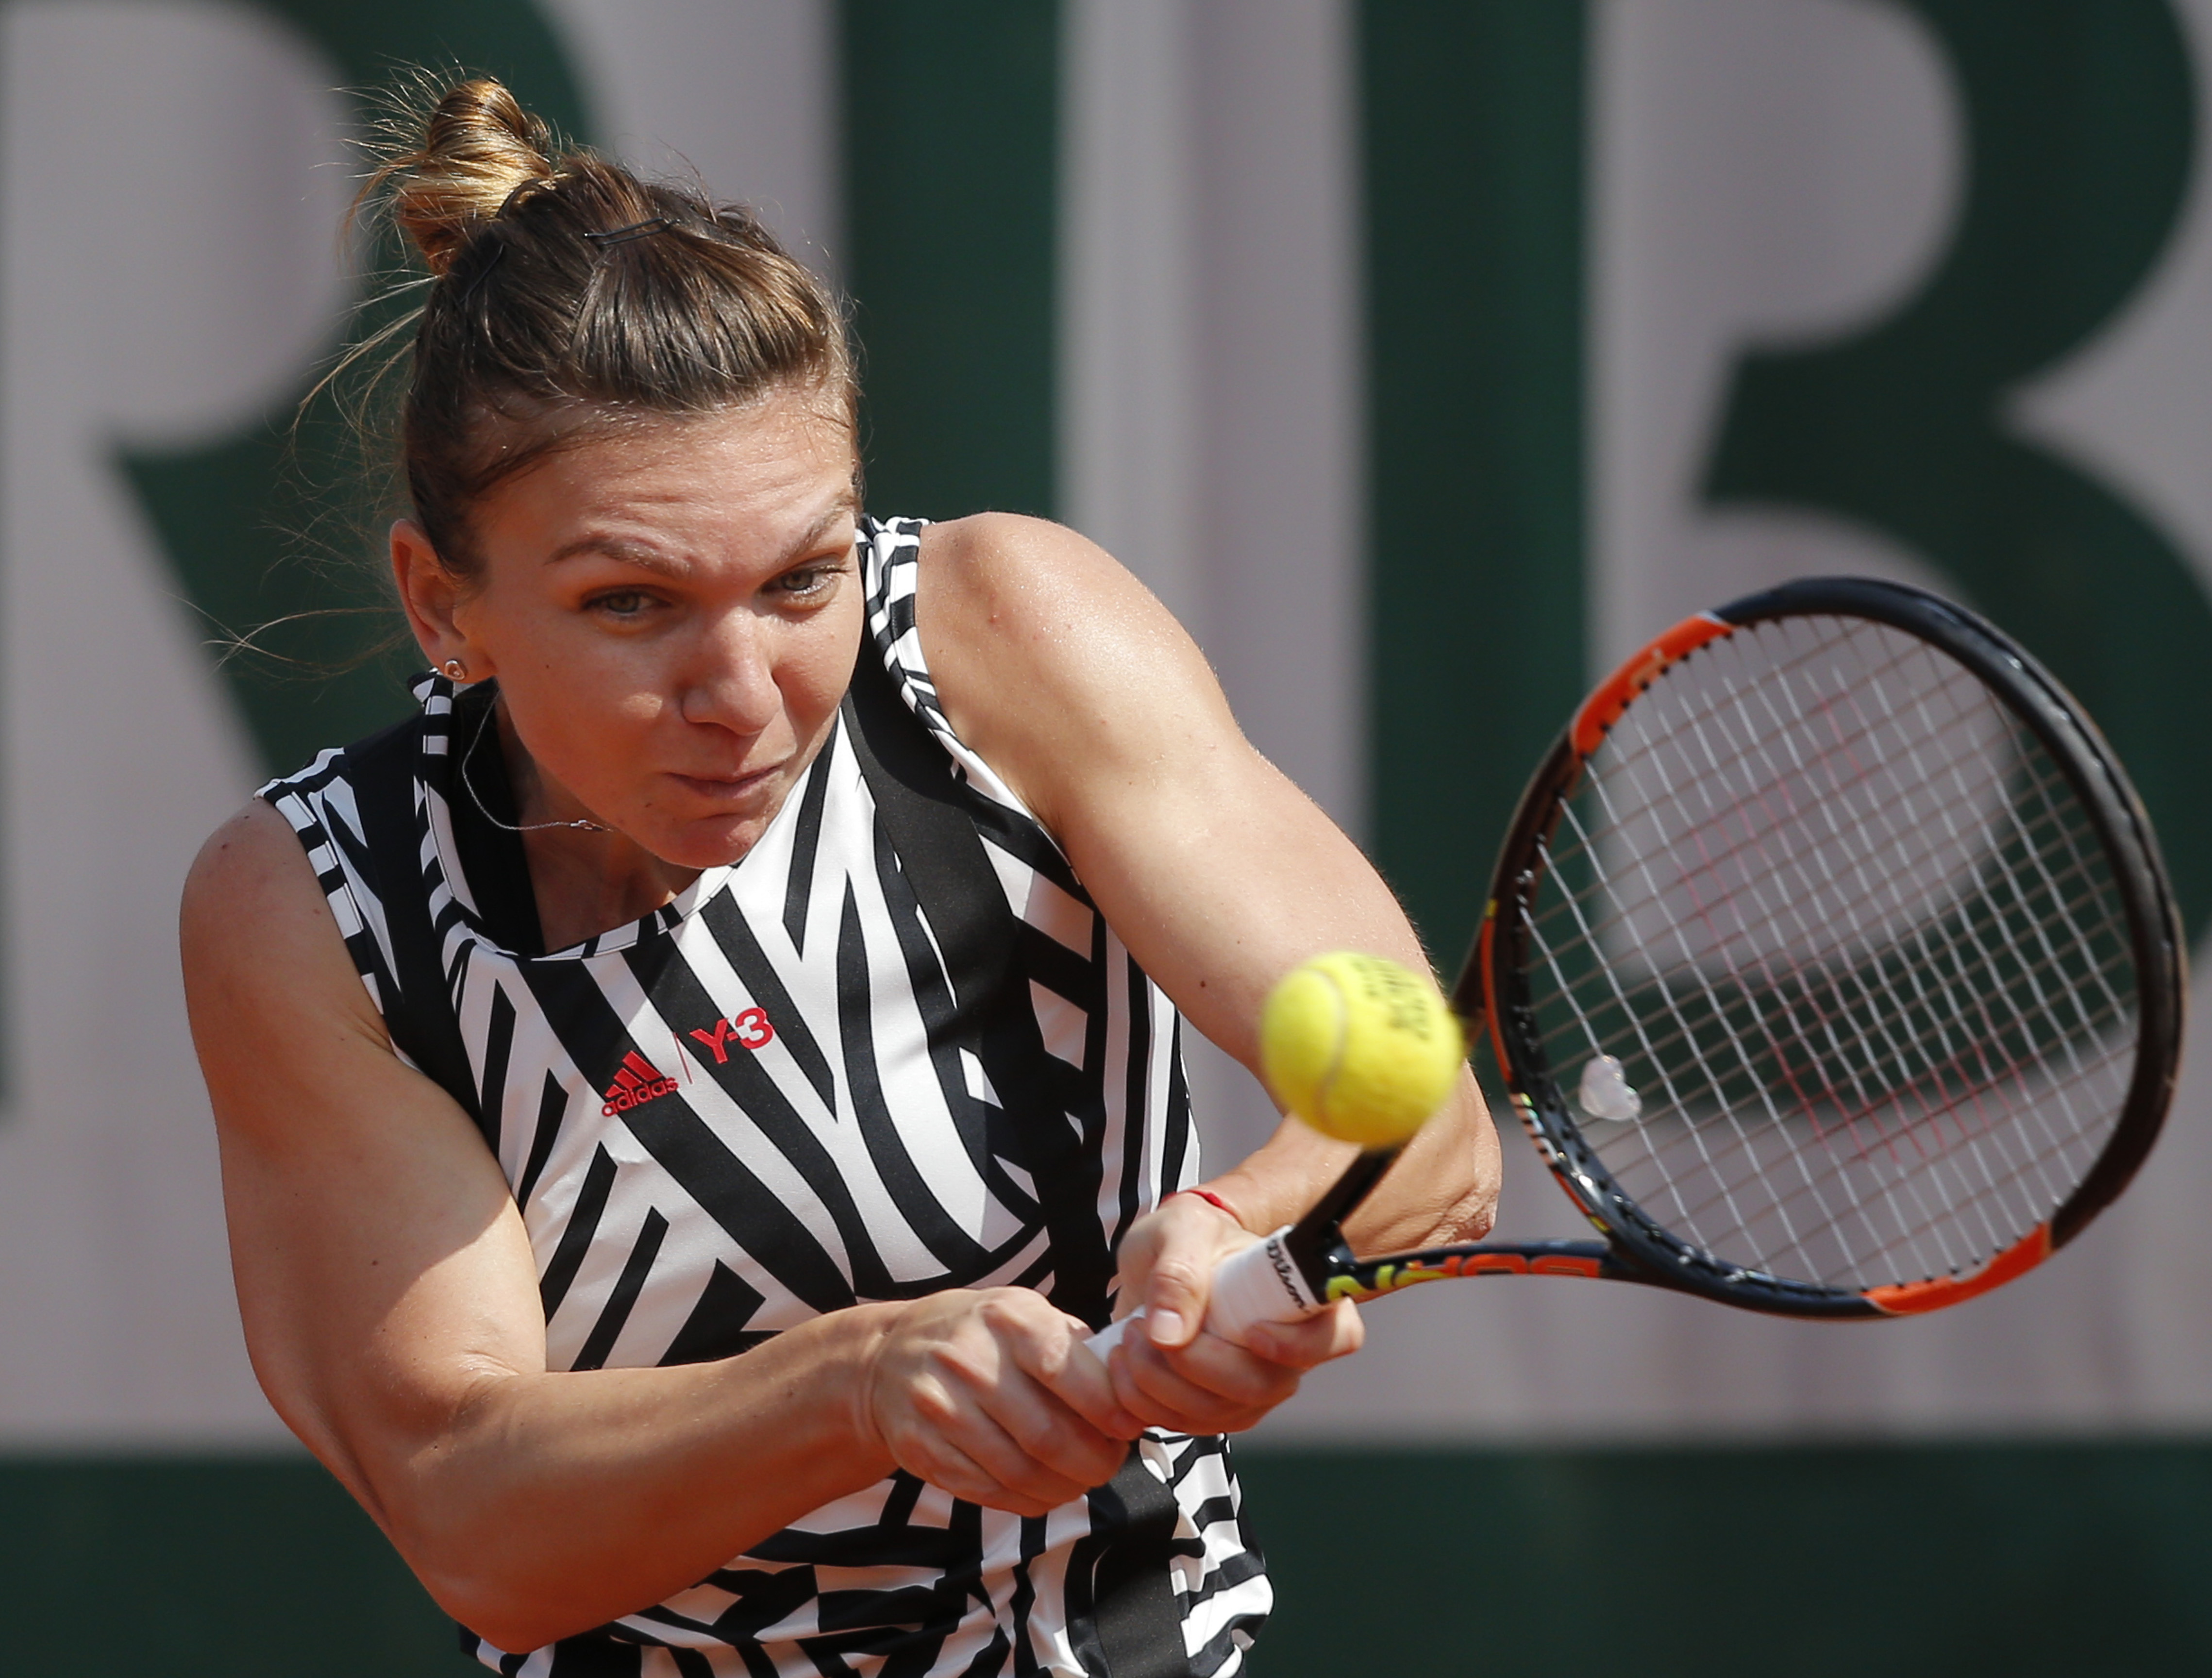 Romania's Simona Halep returns in her third round match of the French Open tennis tournament against Japans Naomi Osaka at the Roland Garros stadium in Paris, France, Friday, May 27, 2016. (AP Photo/Christophe Ena)